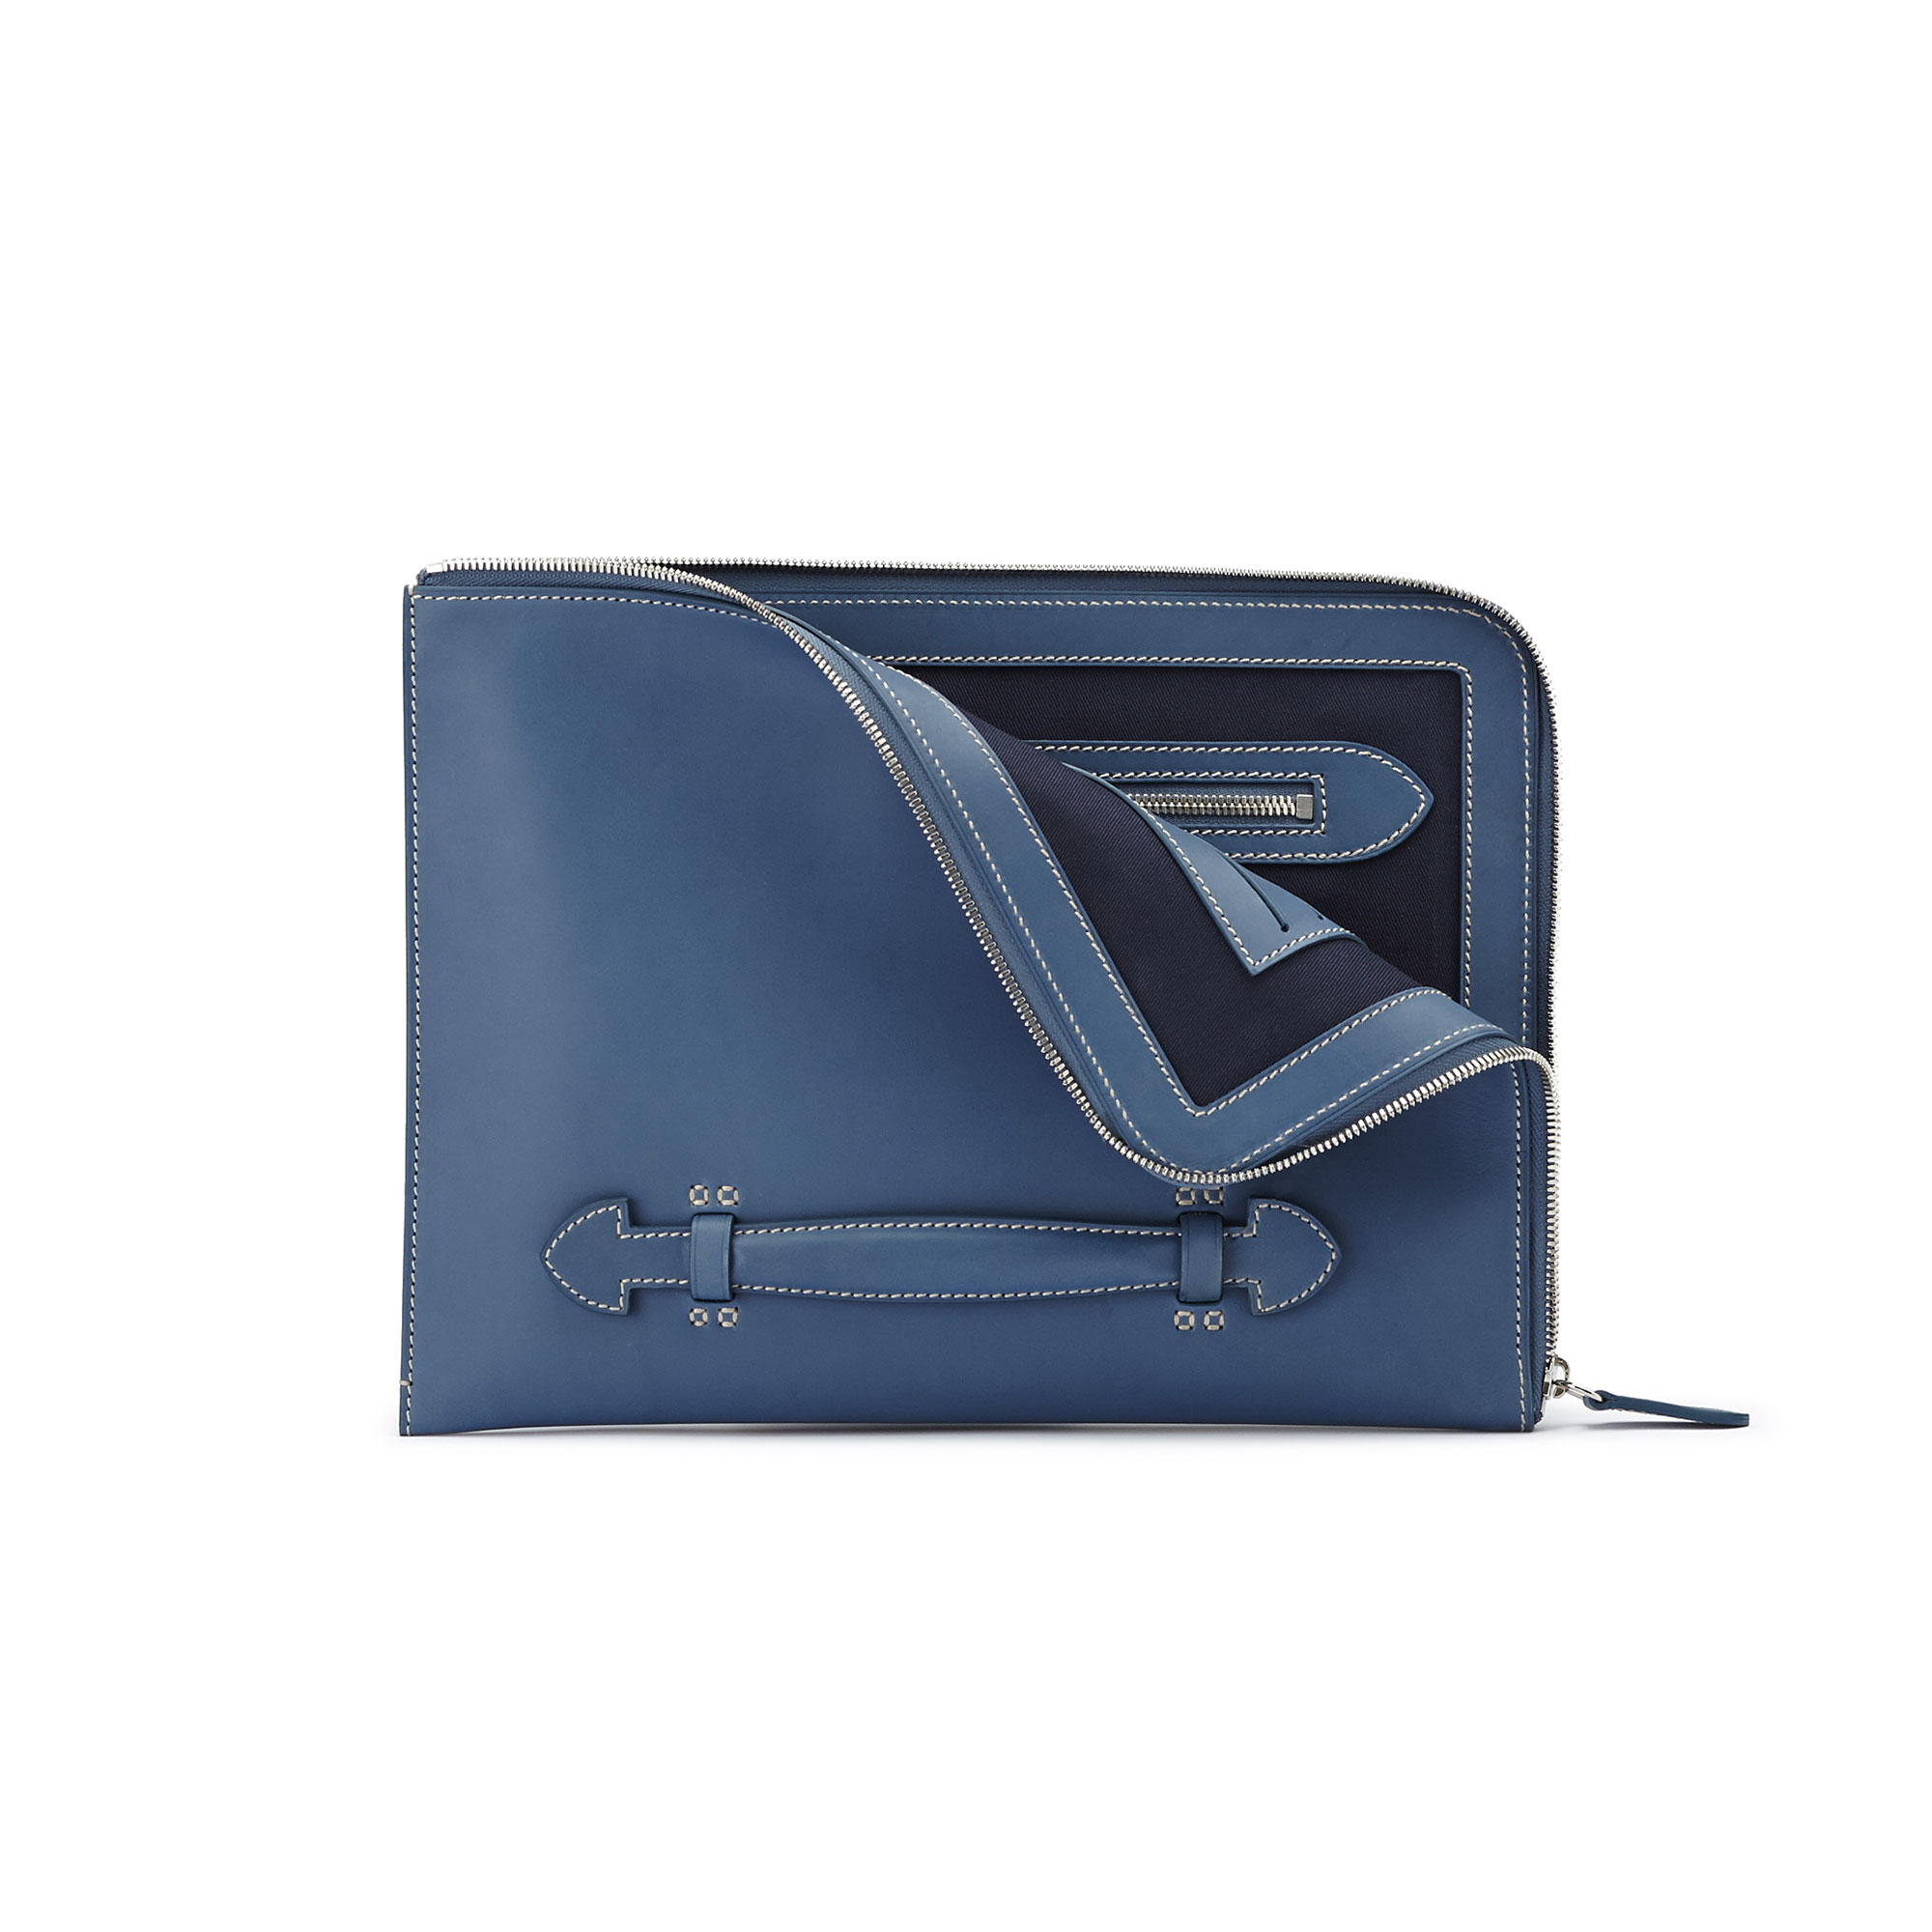 The blue french calf Handle Zip Folio 33 by Bertoni 1949 02